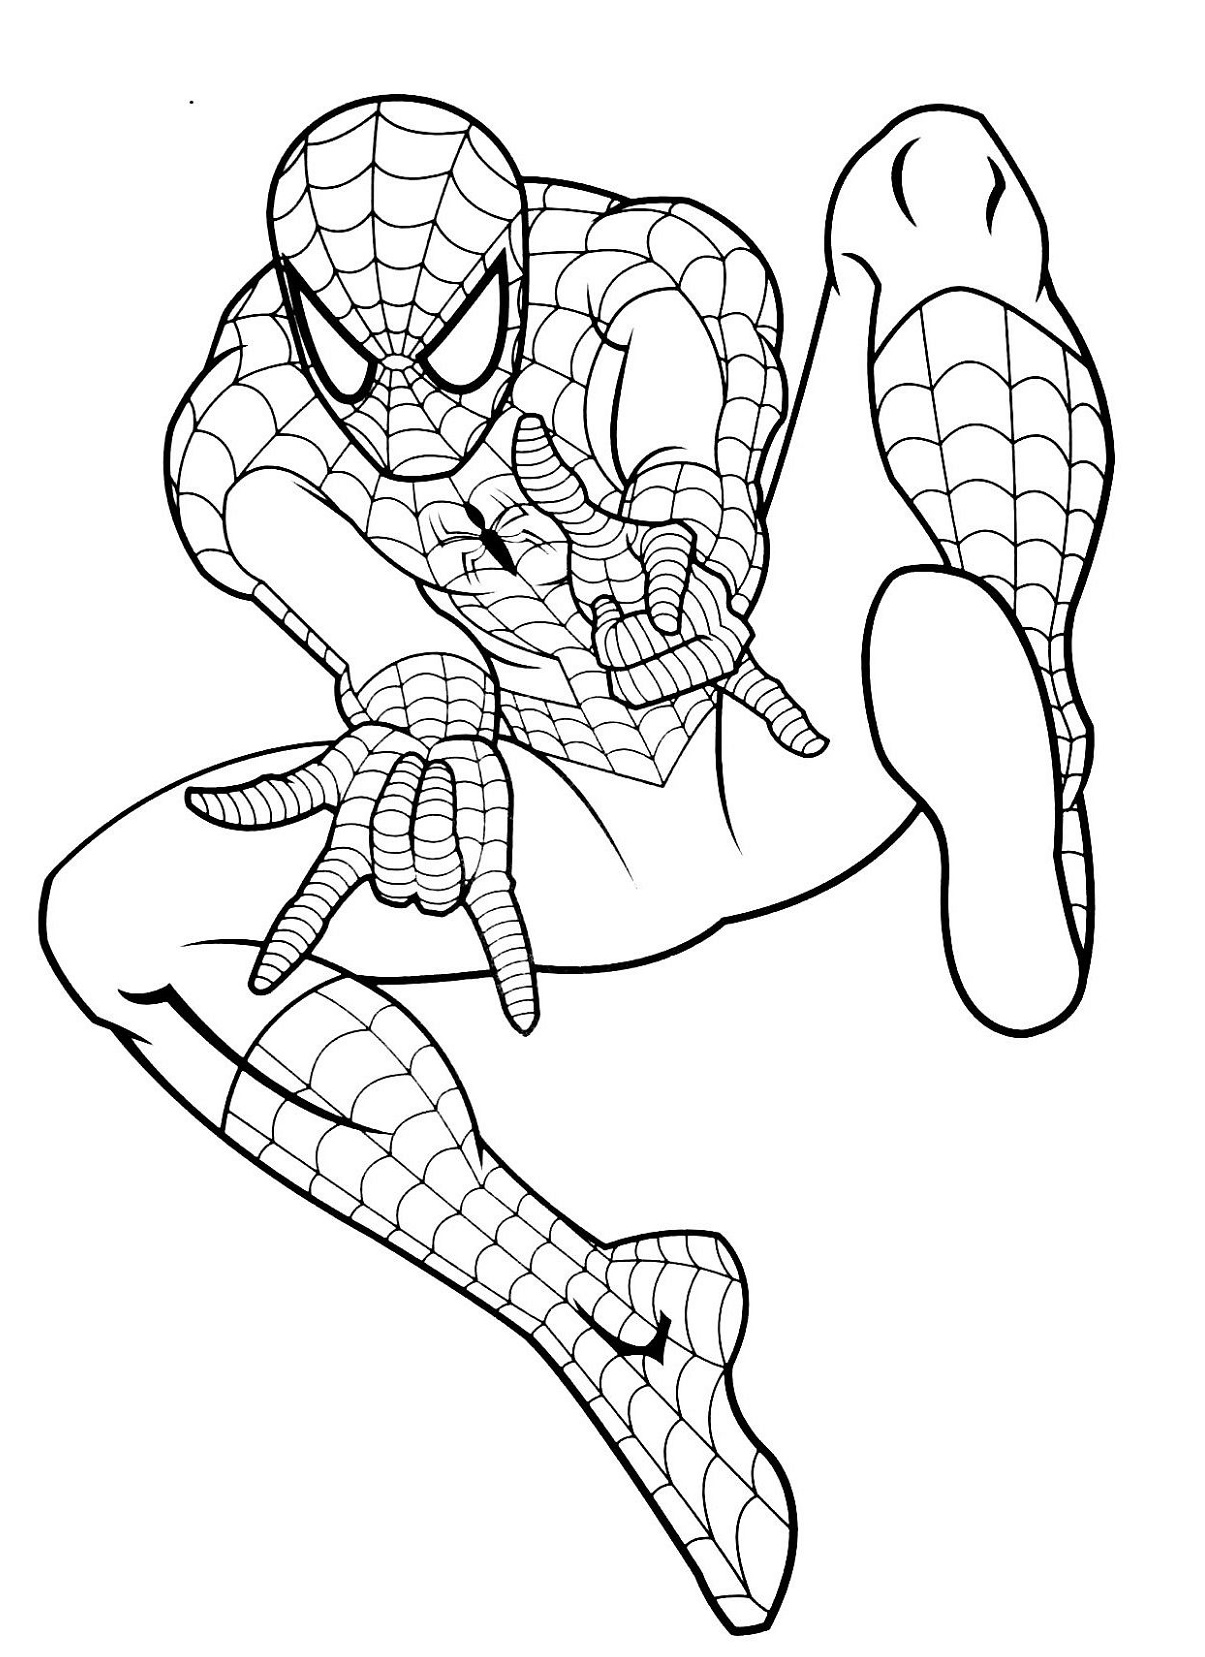 coloring sheet spiderman coloring pages spiderman coloring page download for free print sheet coloring coloring pages spiderman